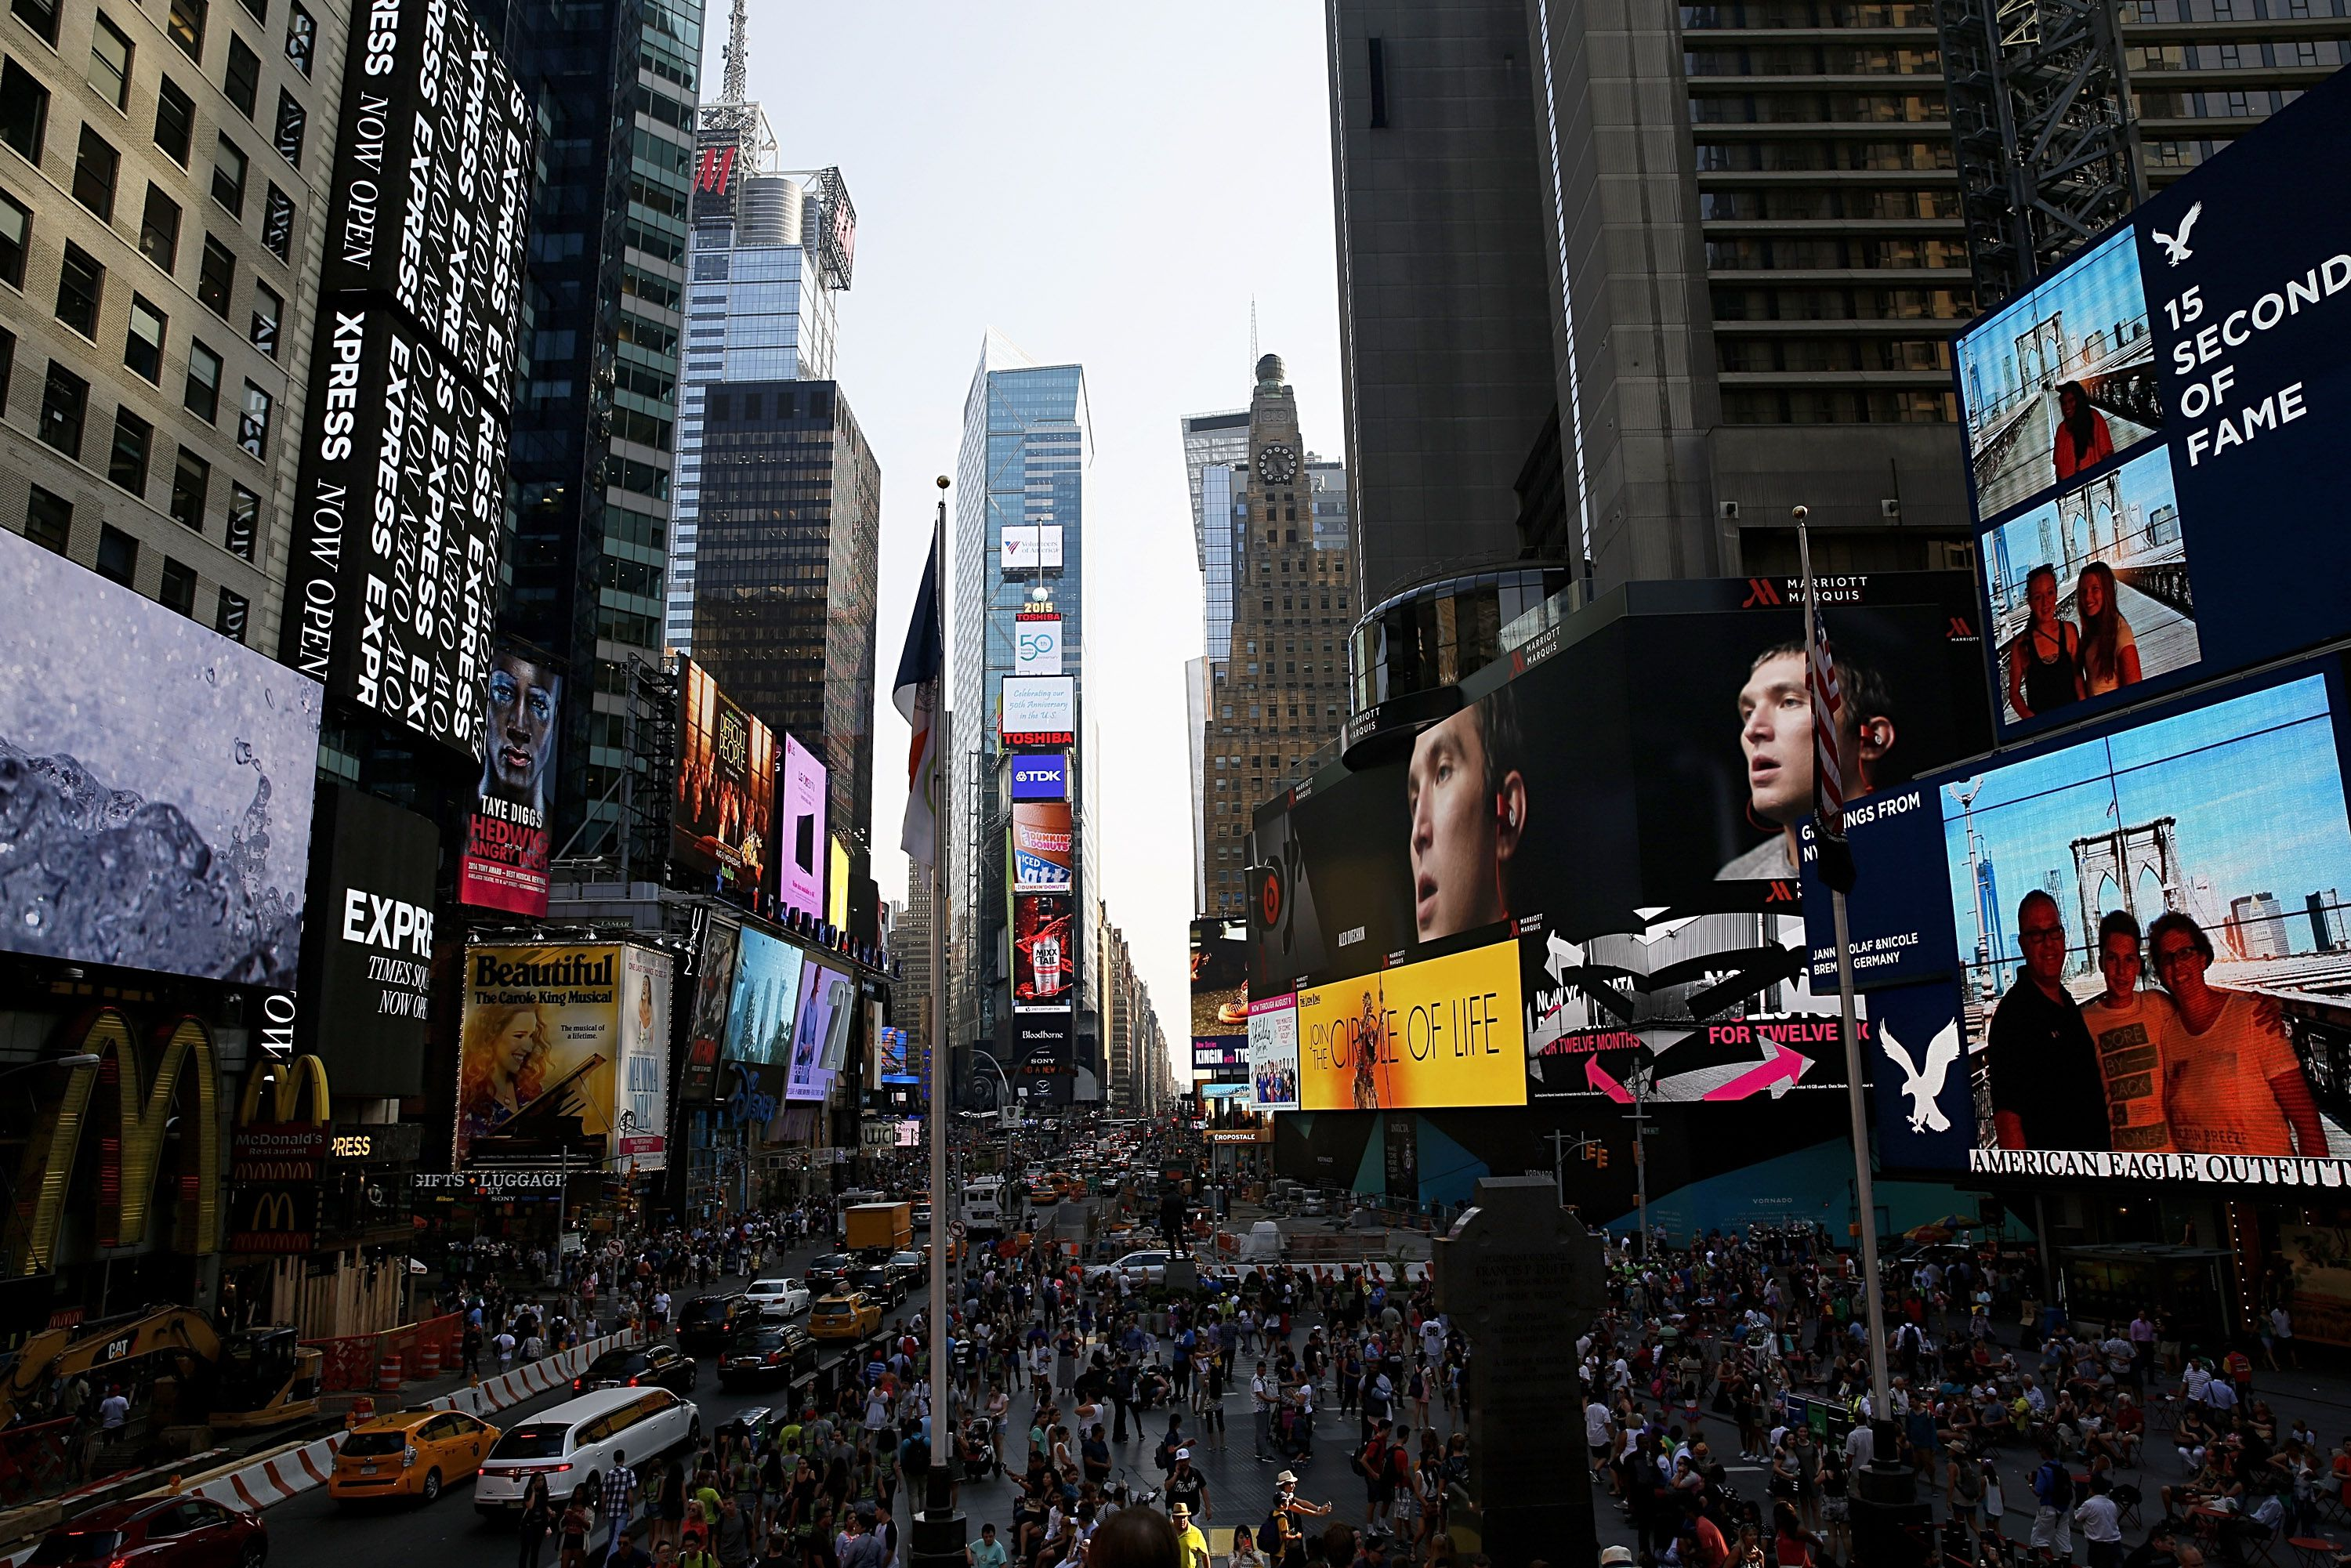 Pedestrians and tourists cross Times Square with it's various billboards on July 29, 2015 in New York City.